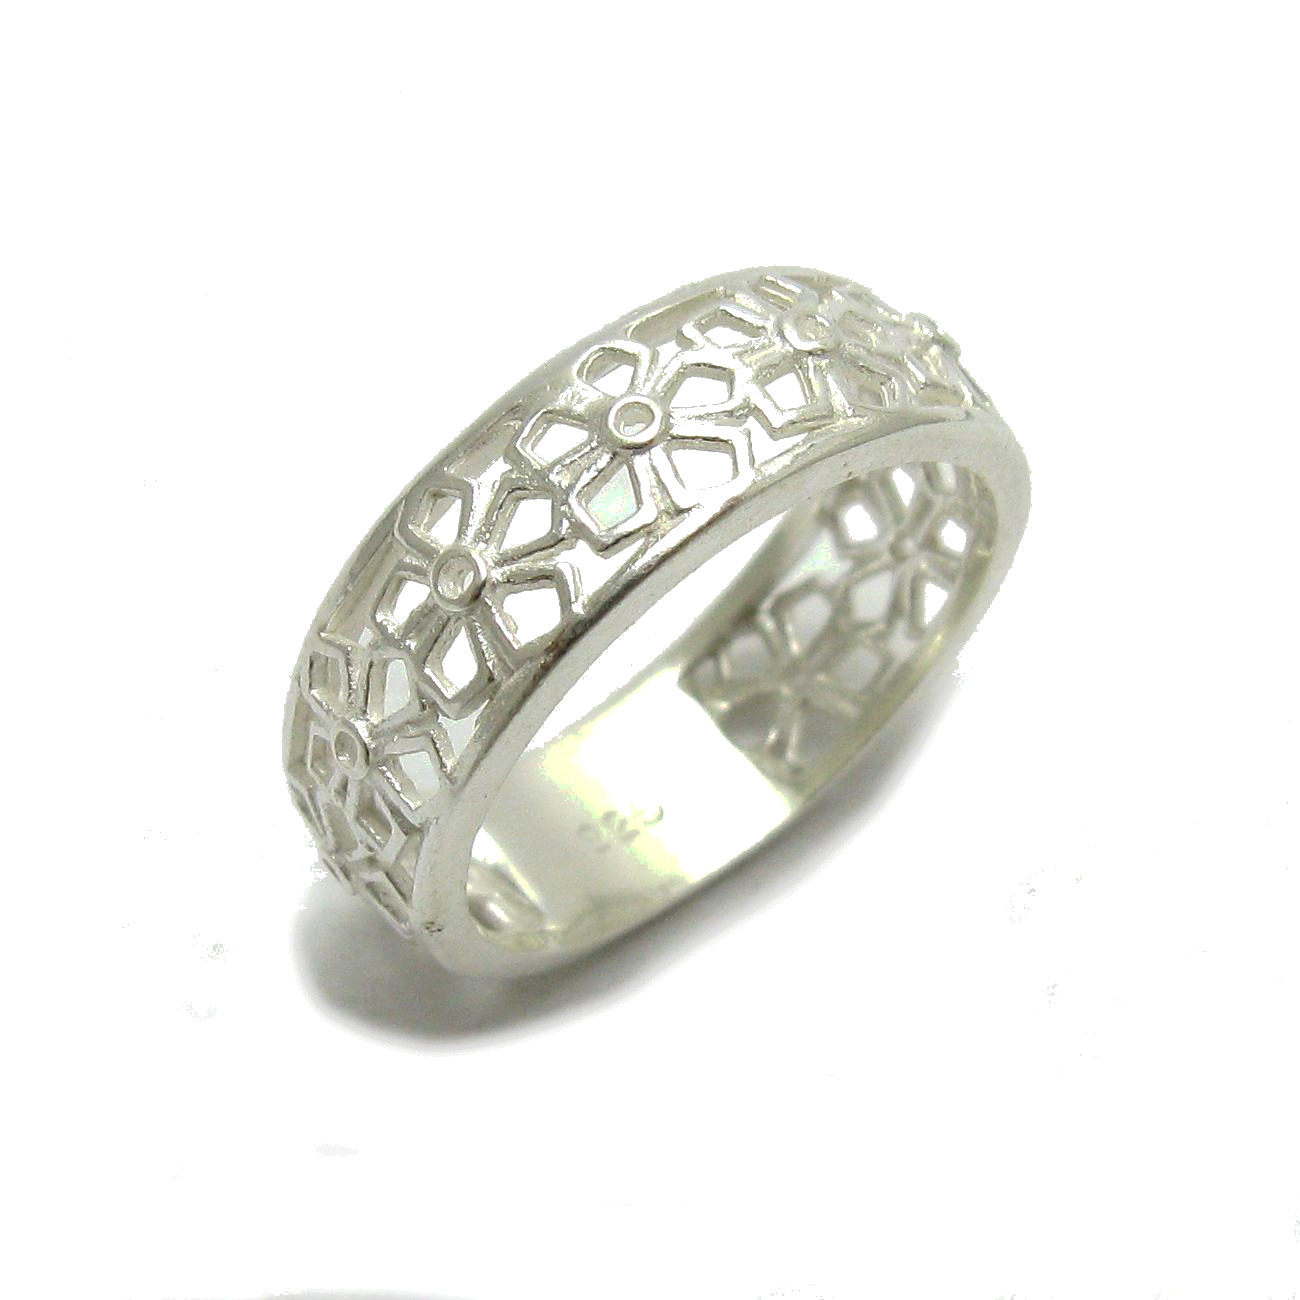 Silver ring - R001774